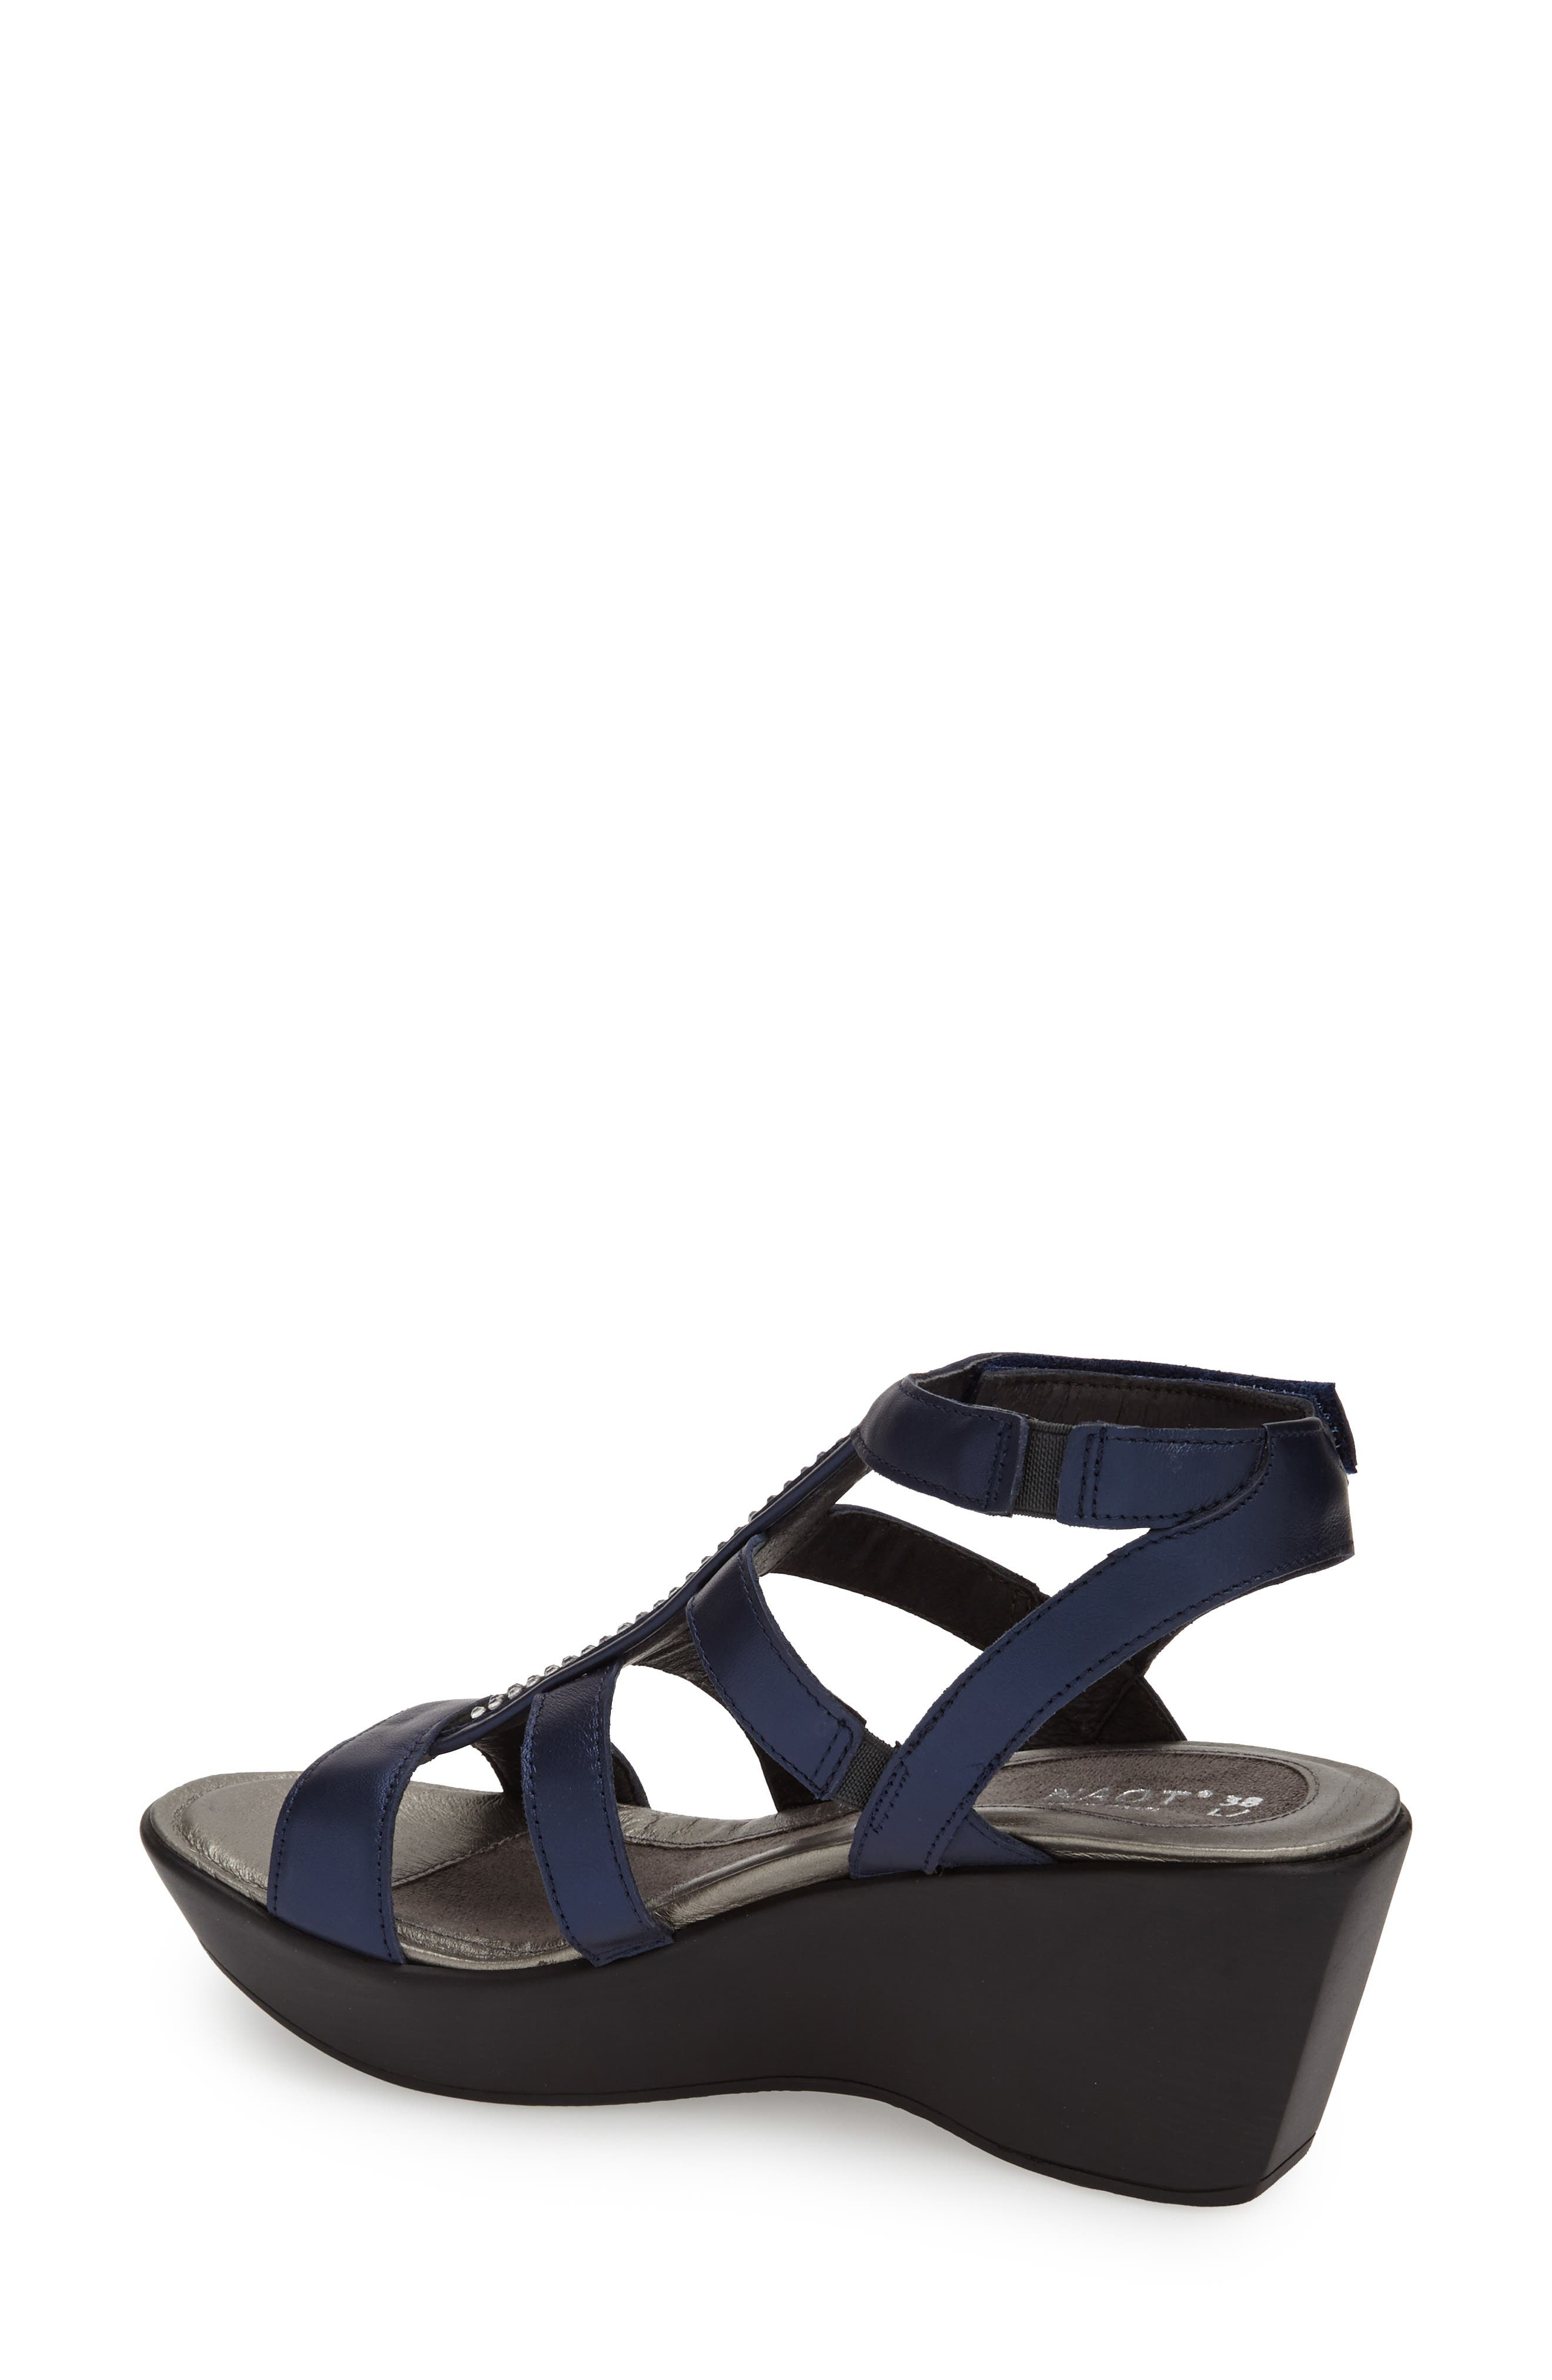 'Mystery' Platform Wedge Sandal,                             Alternate thumbnail 9, color,